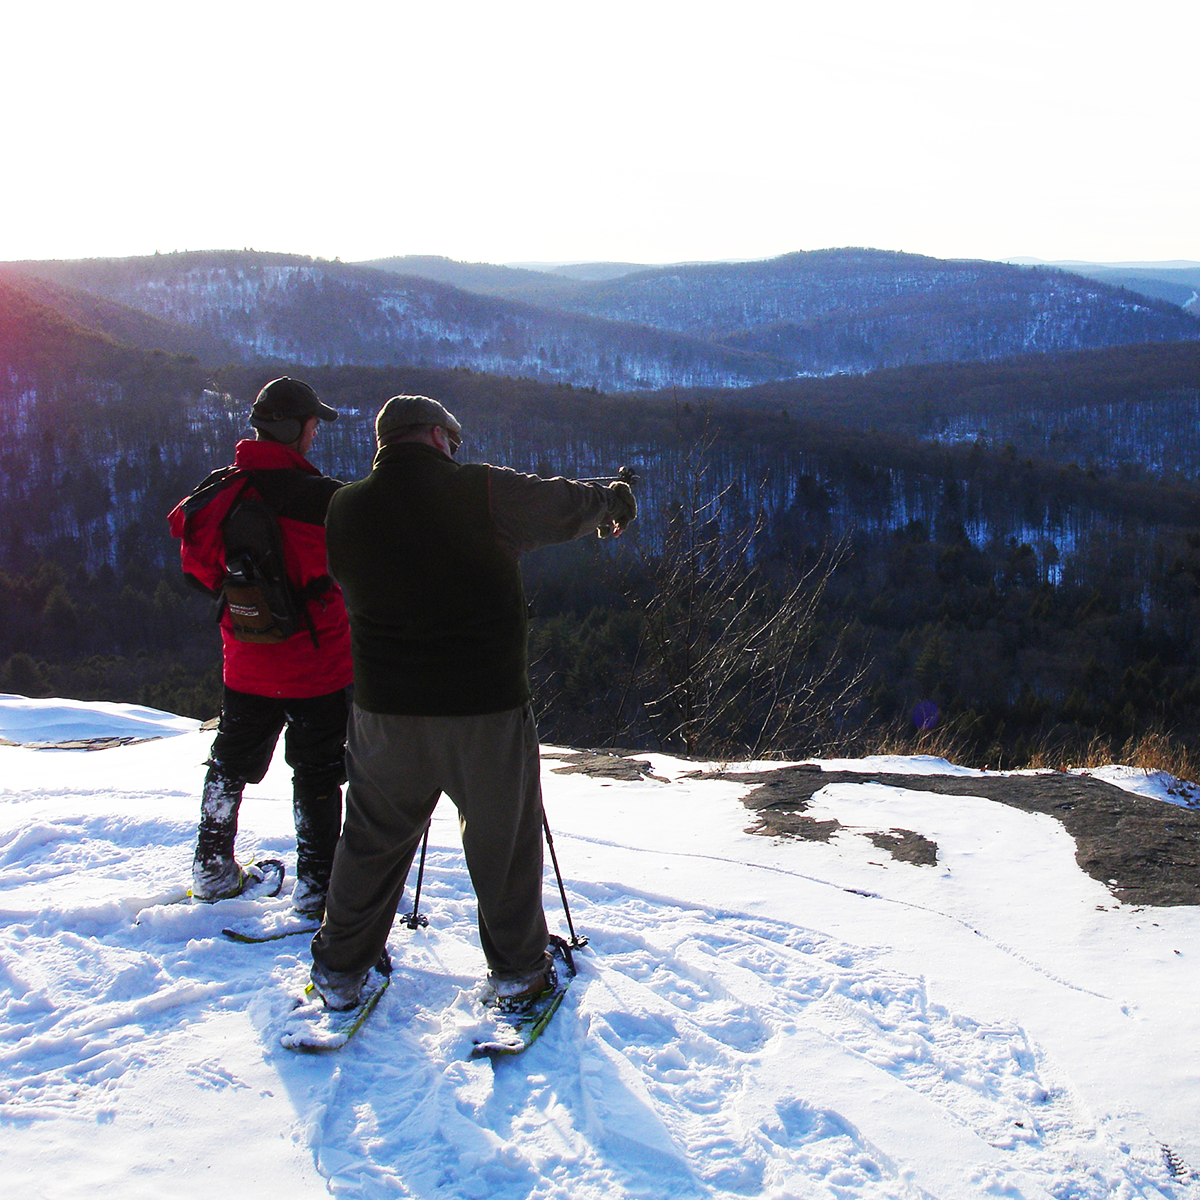 Enjoy A Snowshoeing Or Cross Country Skiing Adventure In The